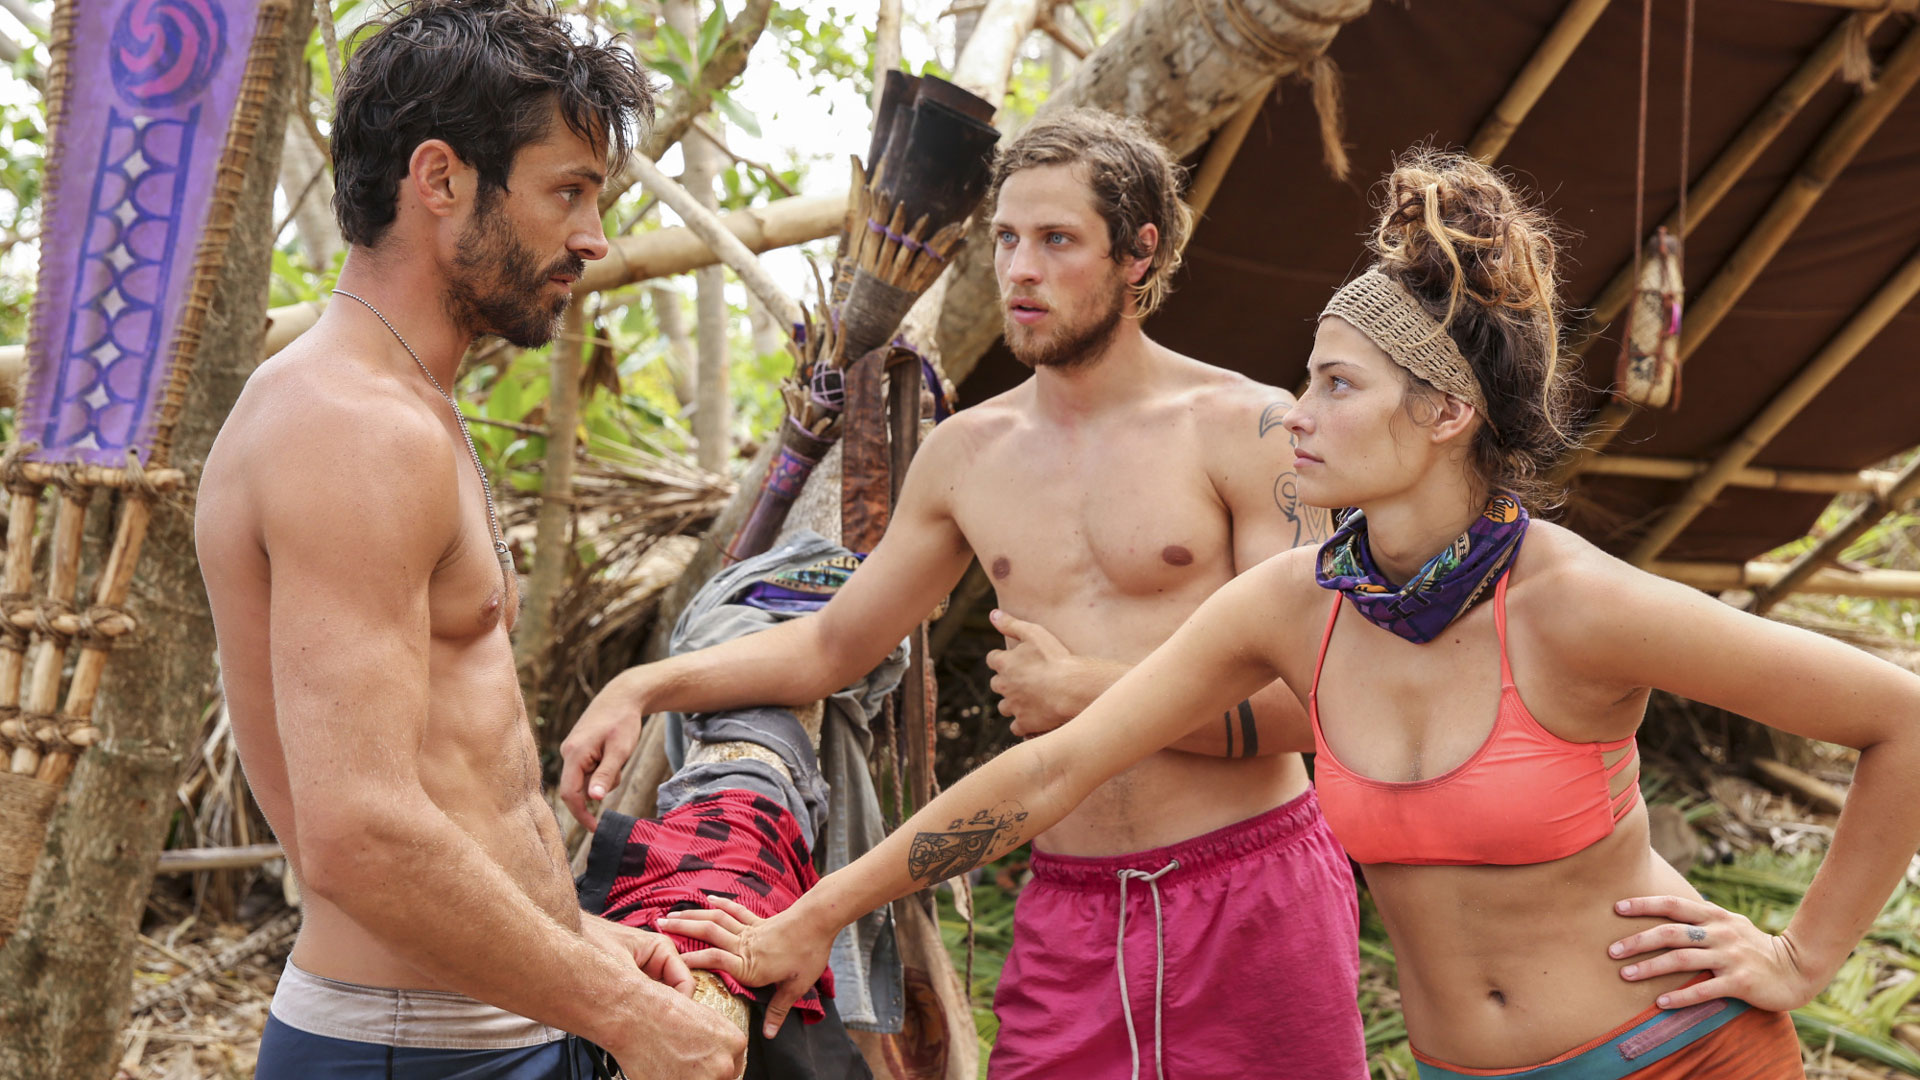 Takali tribe members Ken, Taylor, and Figgy have a conversation.